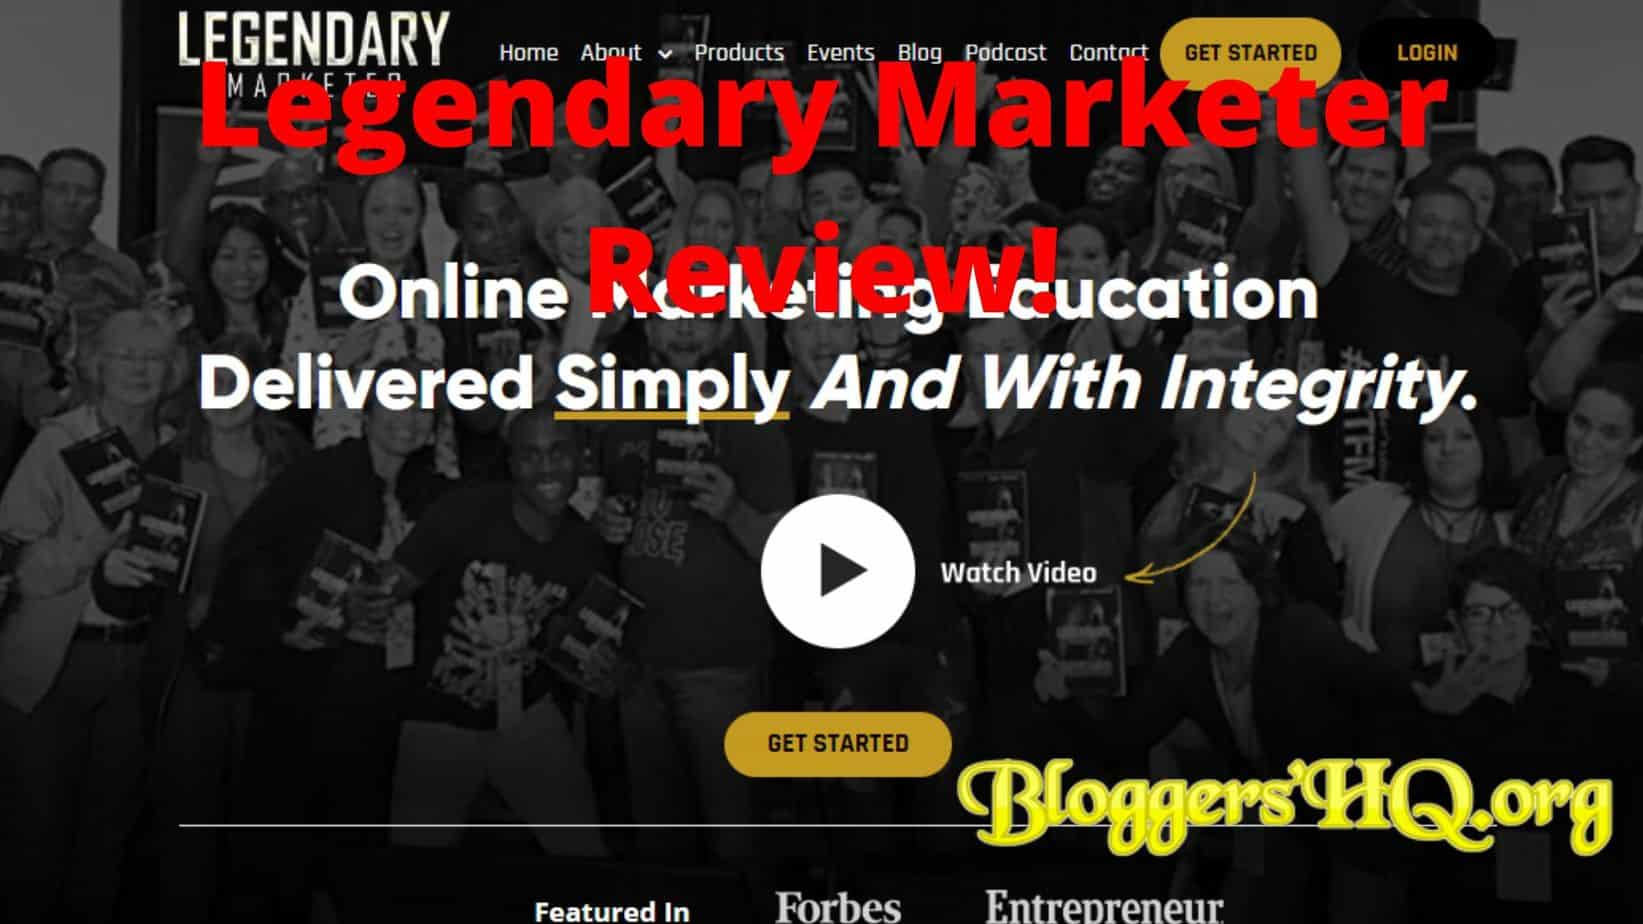 Internet Marketing Program Legendary Marketer Warranty By Serial Number